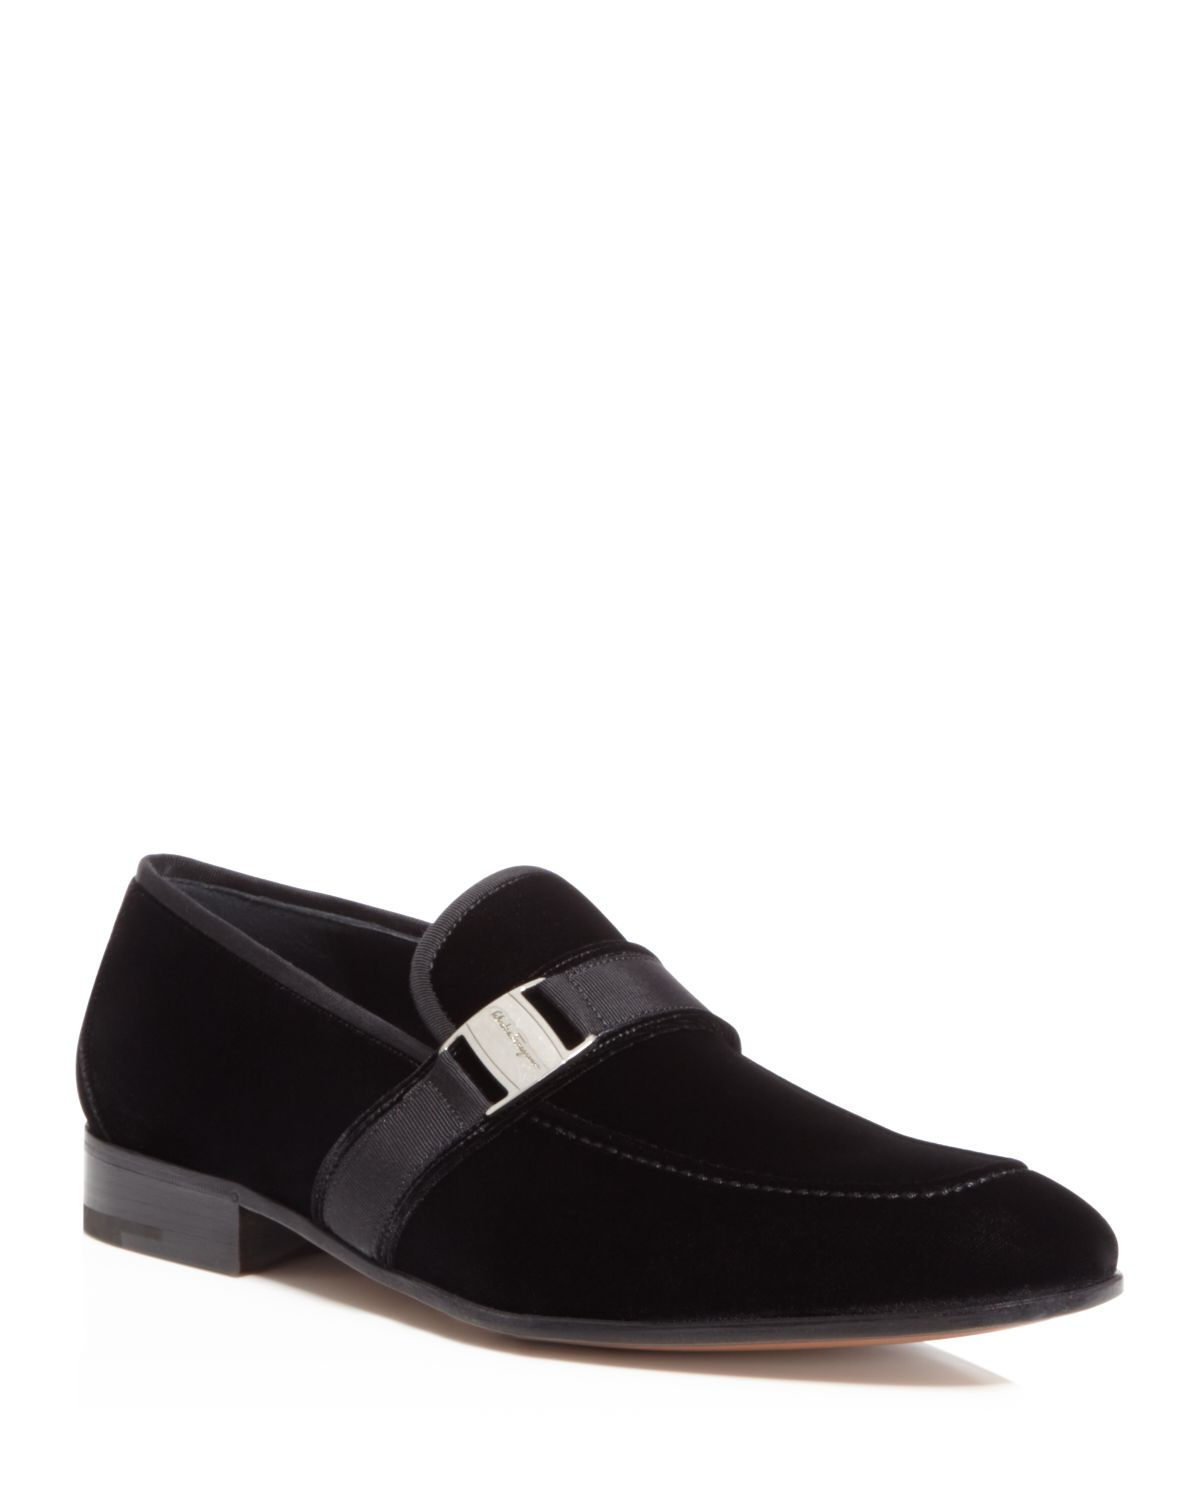 Mocassins Ferragamo Salvatore Ornement - Noir 6Y7bT0